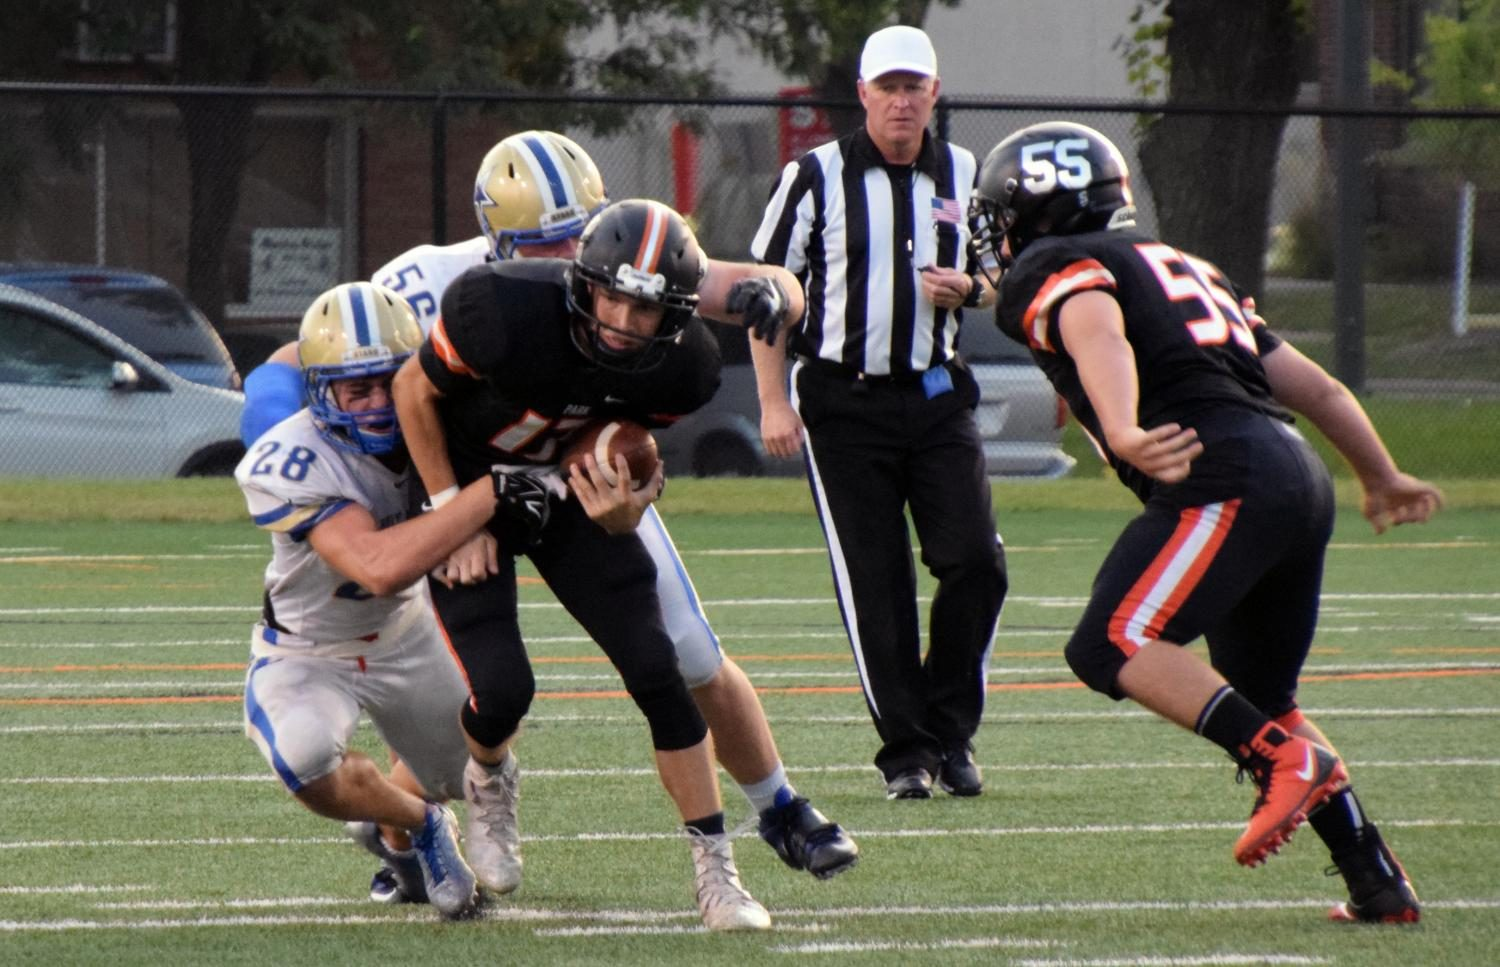 Senior varsity quarterback Jonny Sorenson attempts to break a tackle by Holy Angels' defense, Sept. 15.